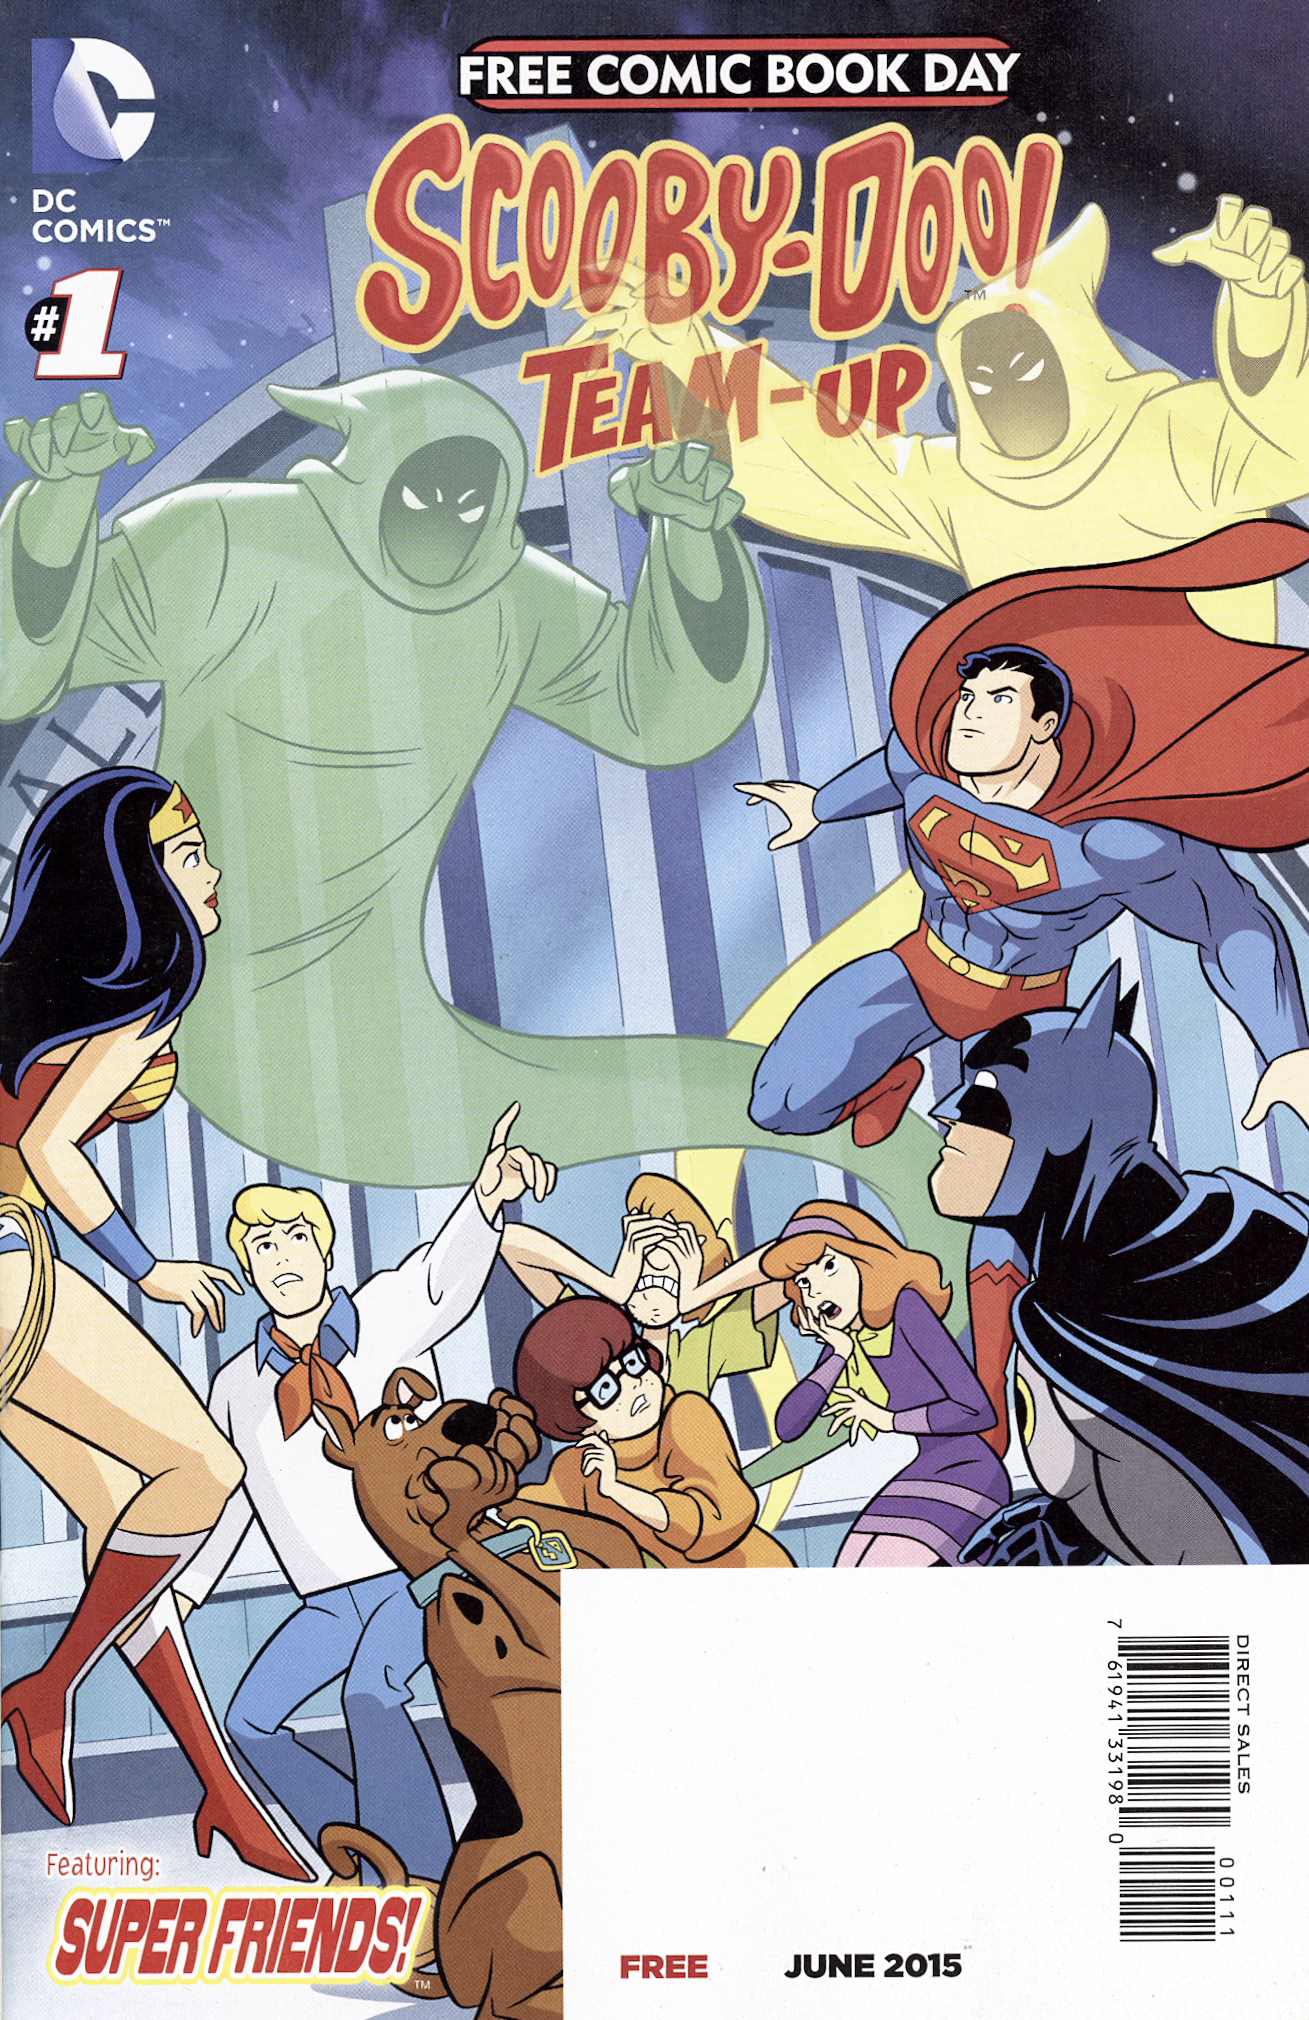 FCBD 2015 Teen Titans Go!/Scooby-Doo! Team-Up Vol 1 1